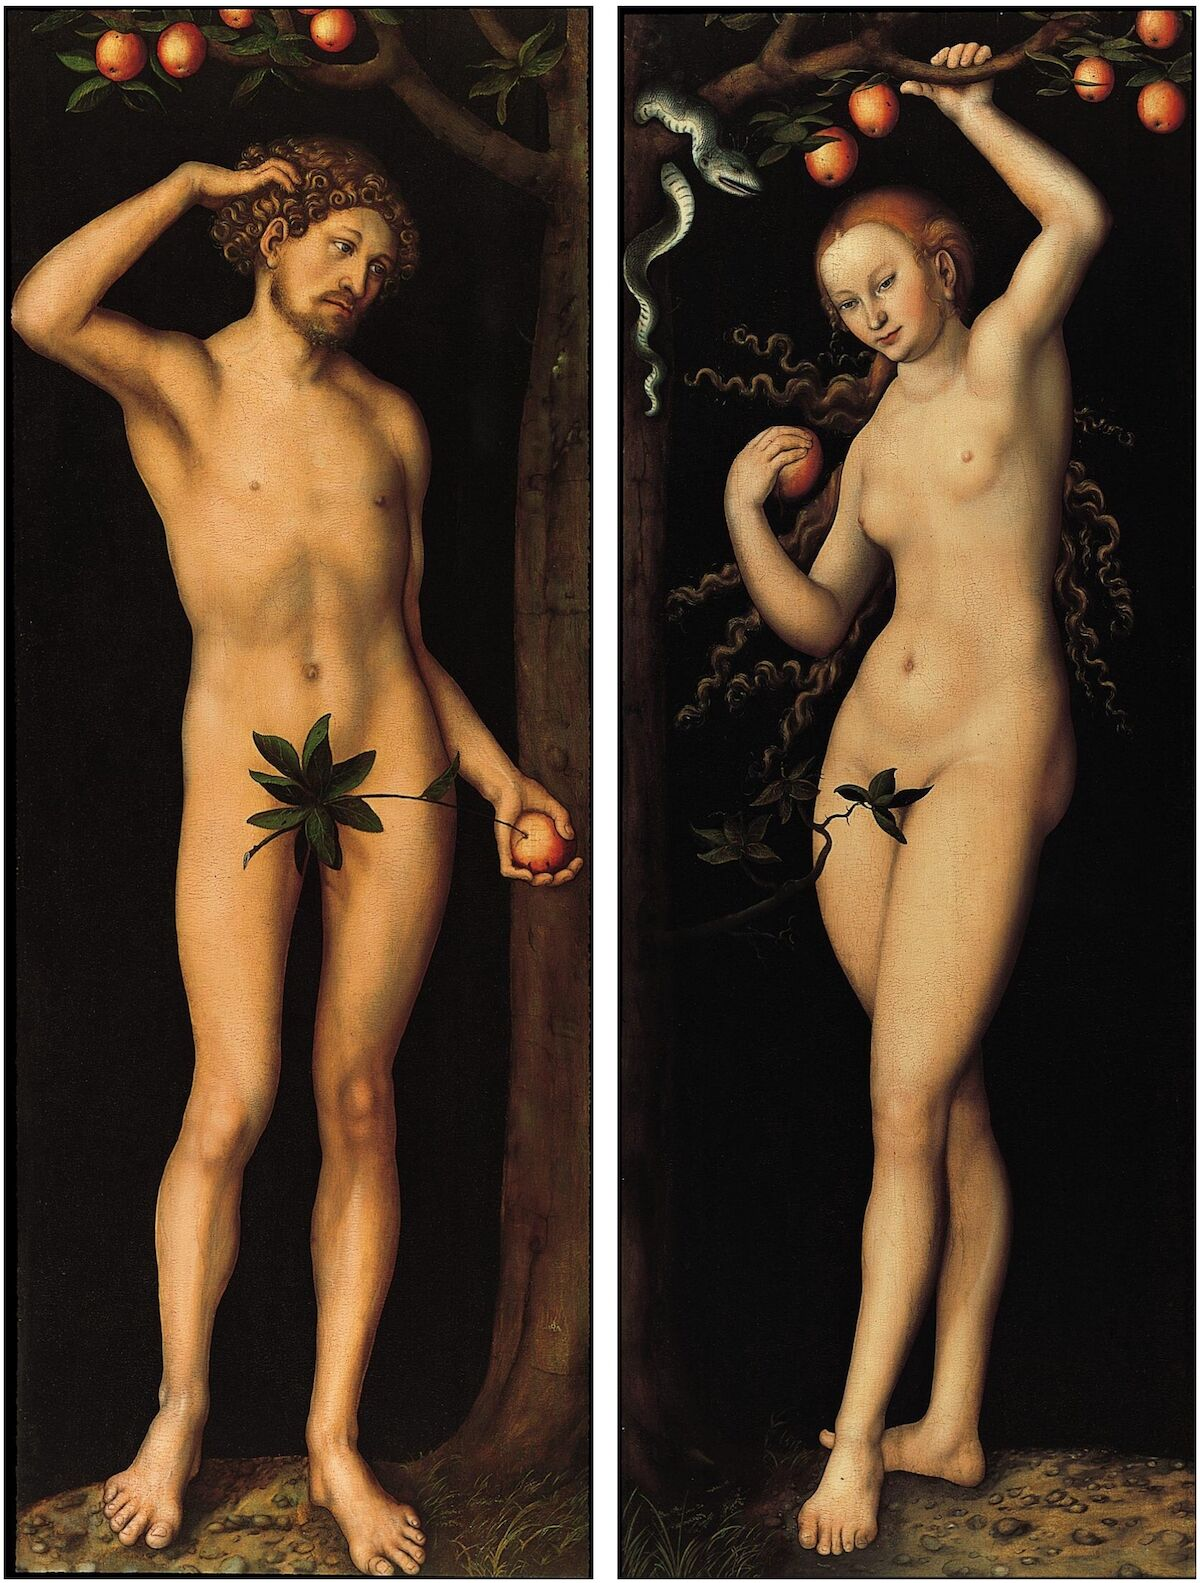 Lucas Cranach the Elder, Adam and Eve, circa 1530. Courtesy the Norton Simon Art Foundation, via Wikimedia Commons.